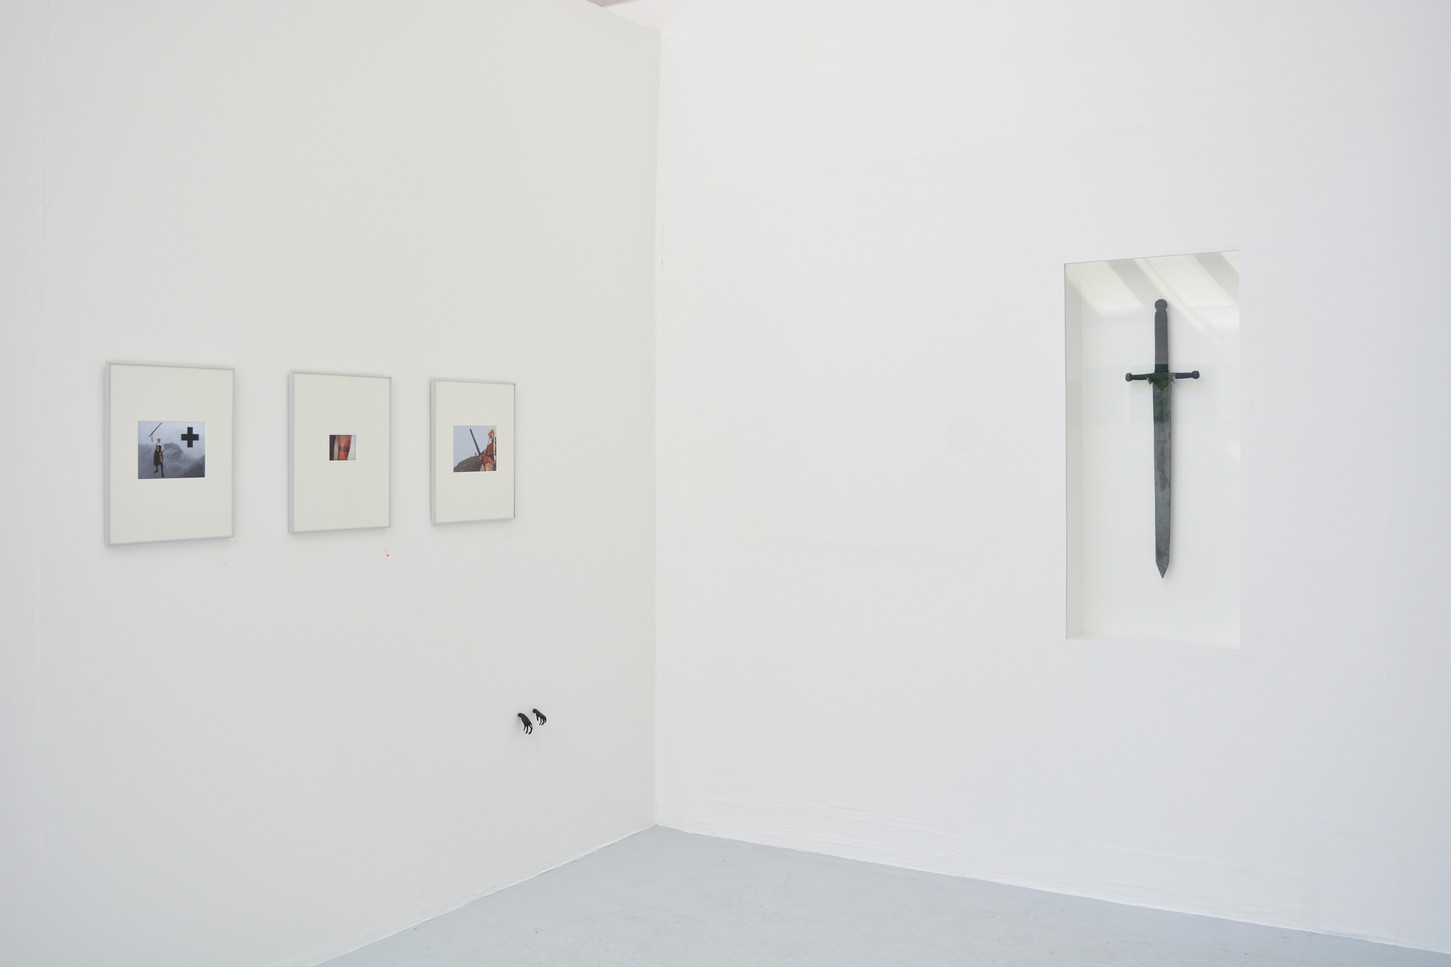 Installation shot of 'Kneeling before icons'